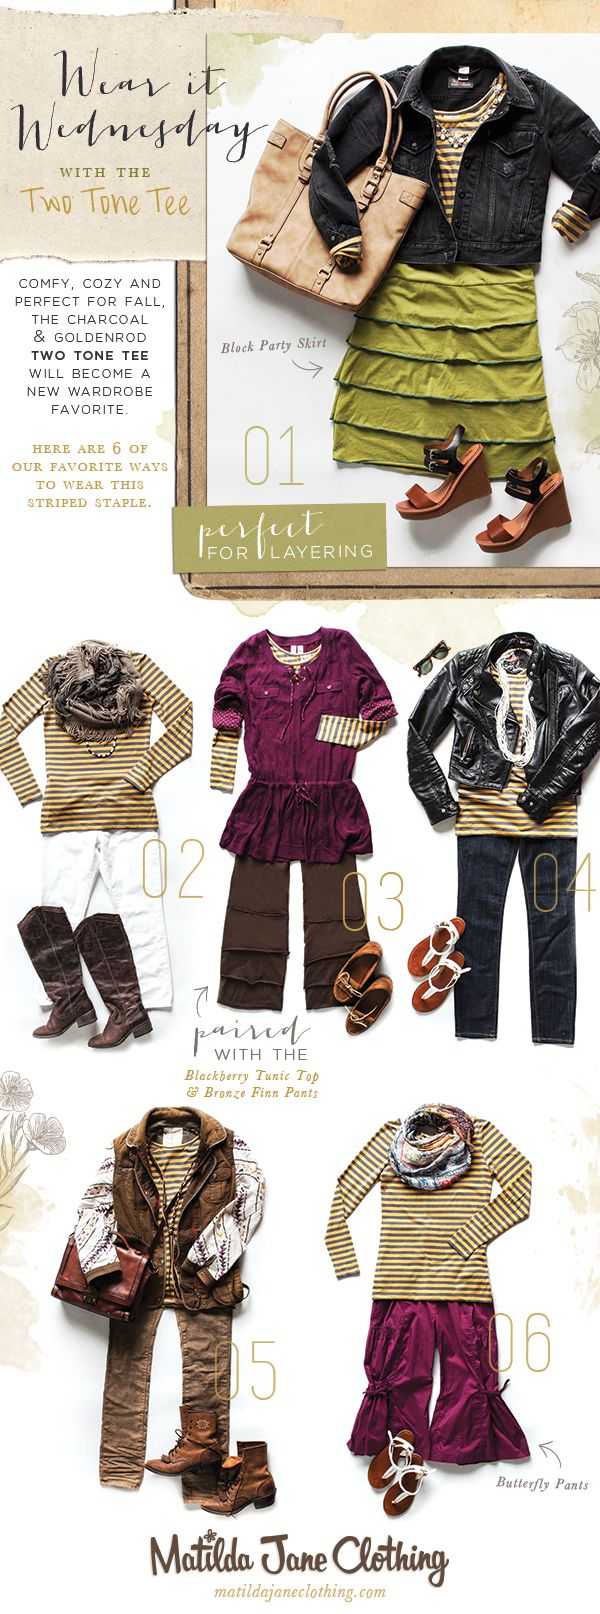 Ma matilda jane good luck trunk coupon code - Ways To Wear It Wednesday